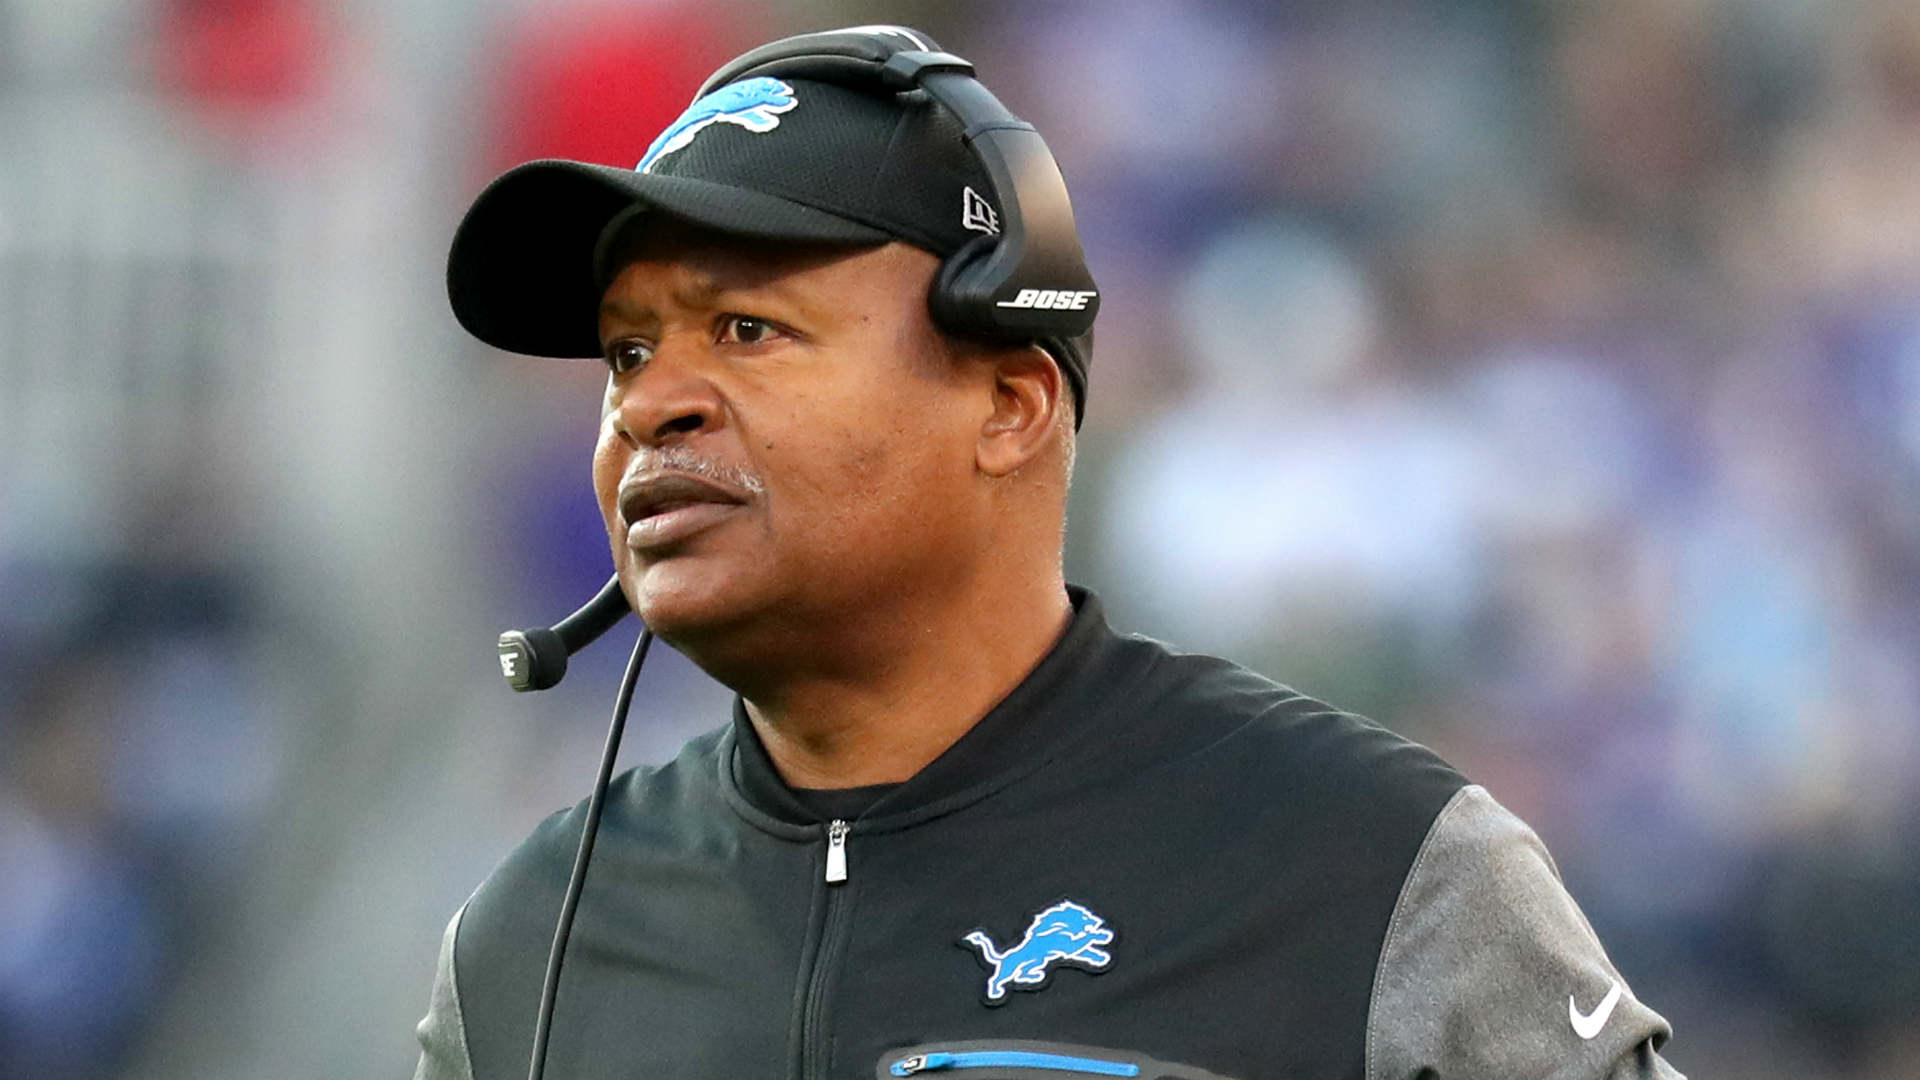 Dolphins assistant head coach Jim Caldwell to take leave of absence